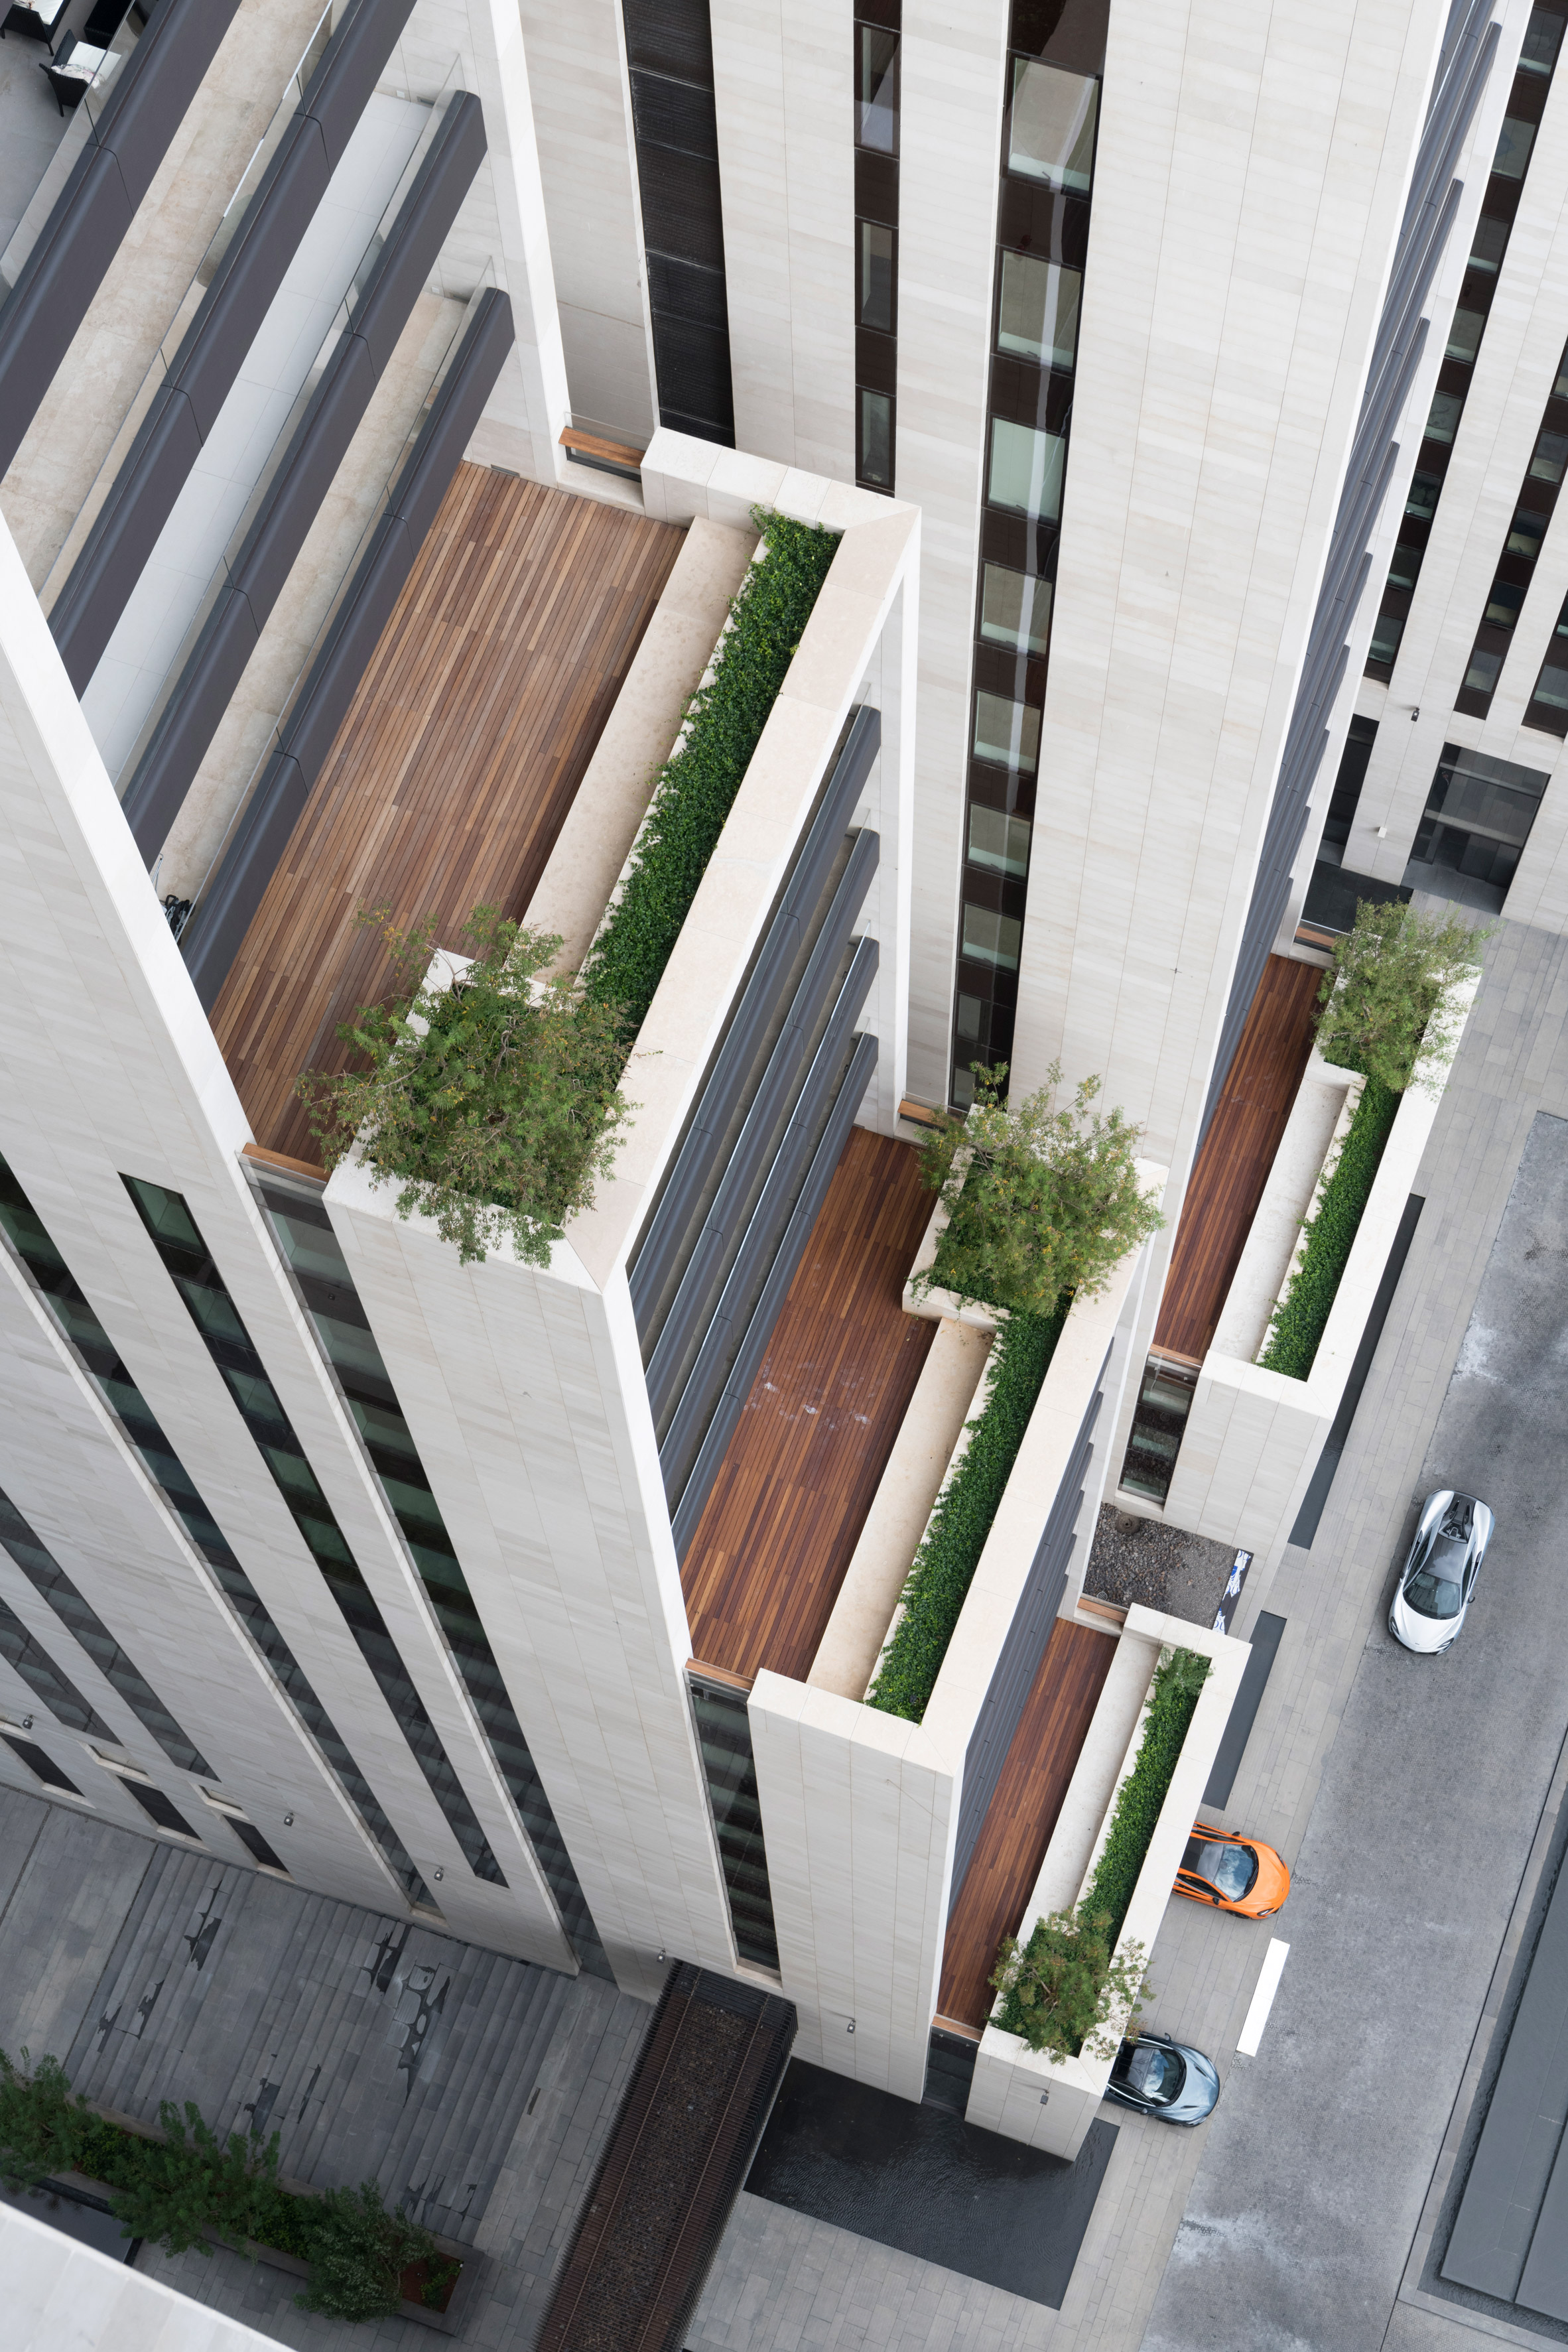 Architecture > 3Beirut by Foster + Partners